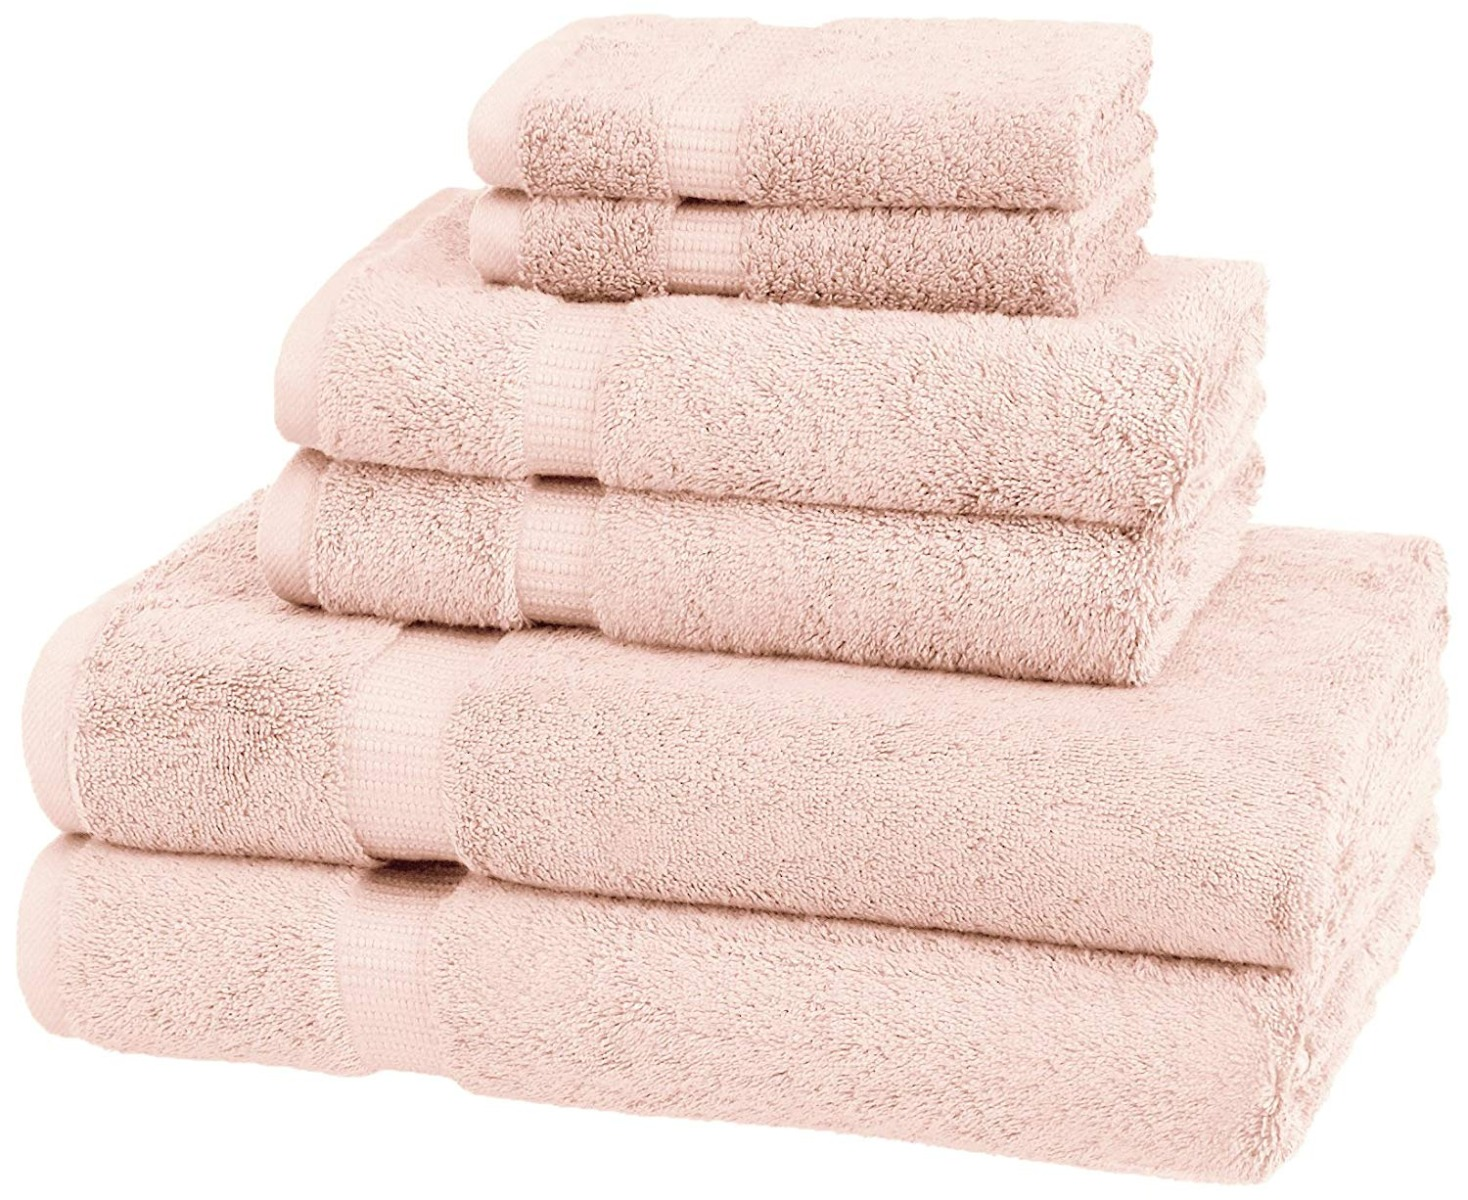 Supperfile collection - Pink Towels